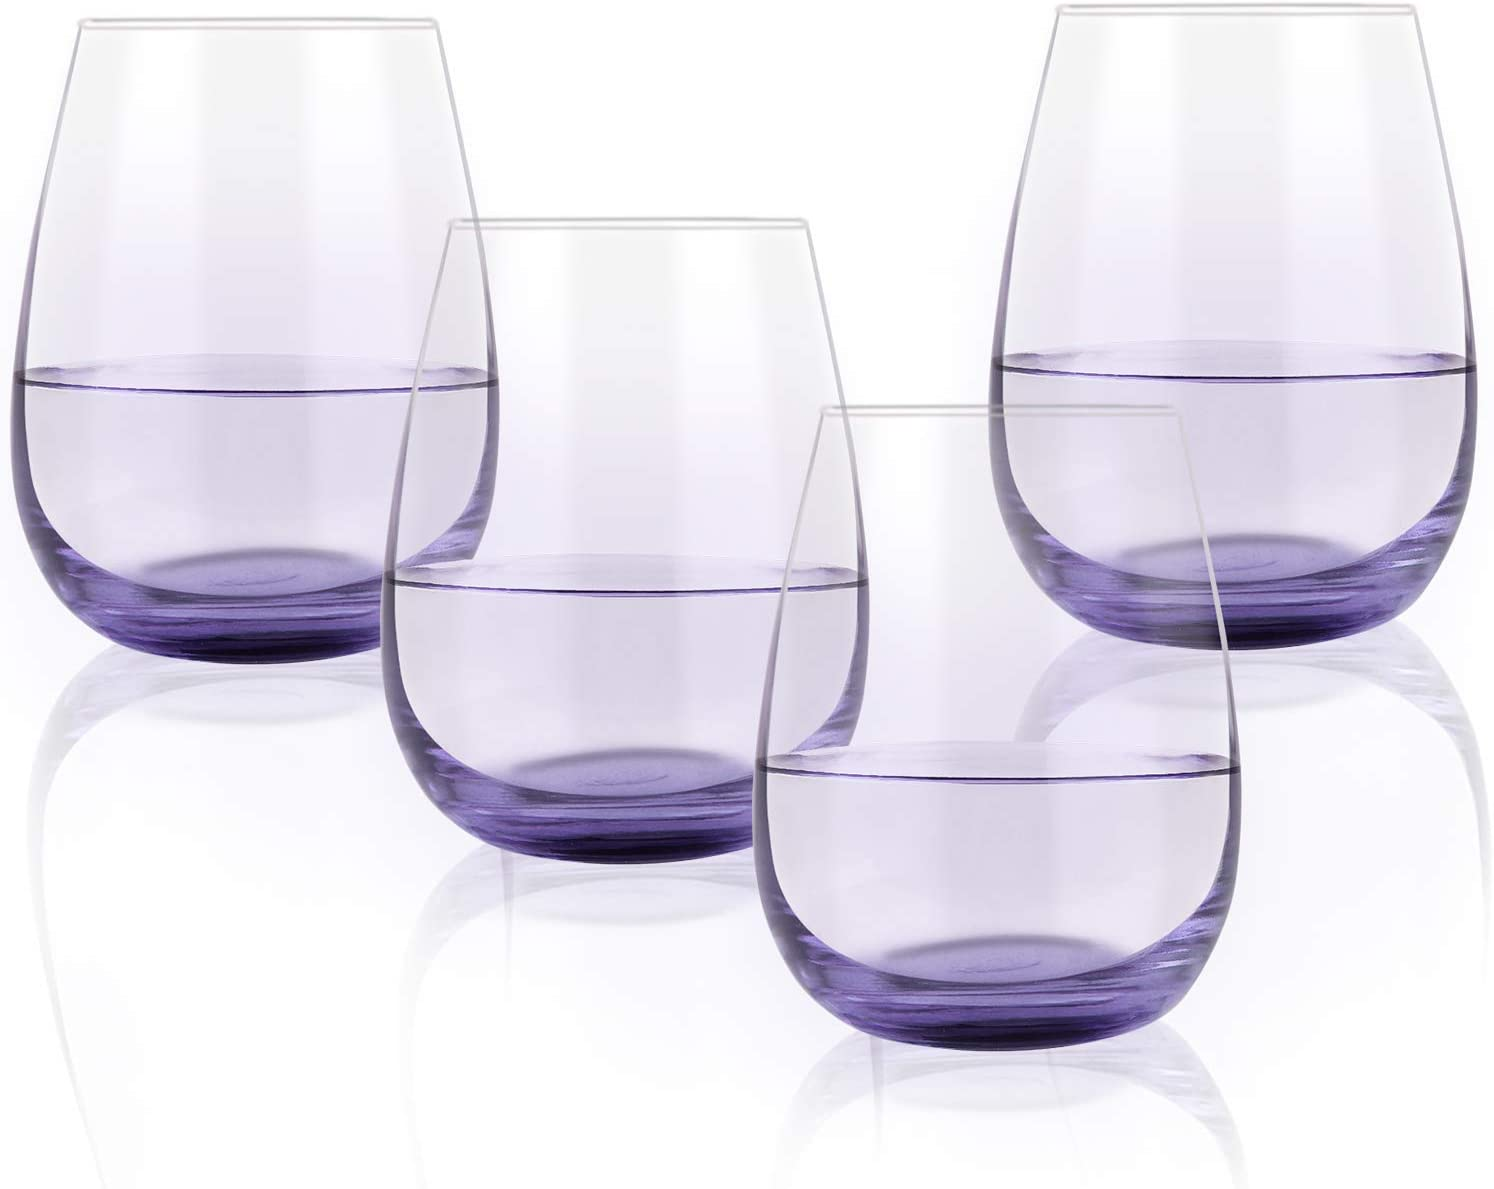 Colored Stemless Wine Glass Set of 4, 15 Oz Vibrant Wine Glass with Purple Bottom for Men Women Friend Coworker Lover, Gift Idea for Party Festival Daily Use